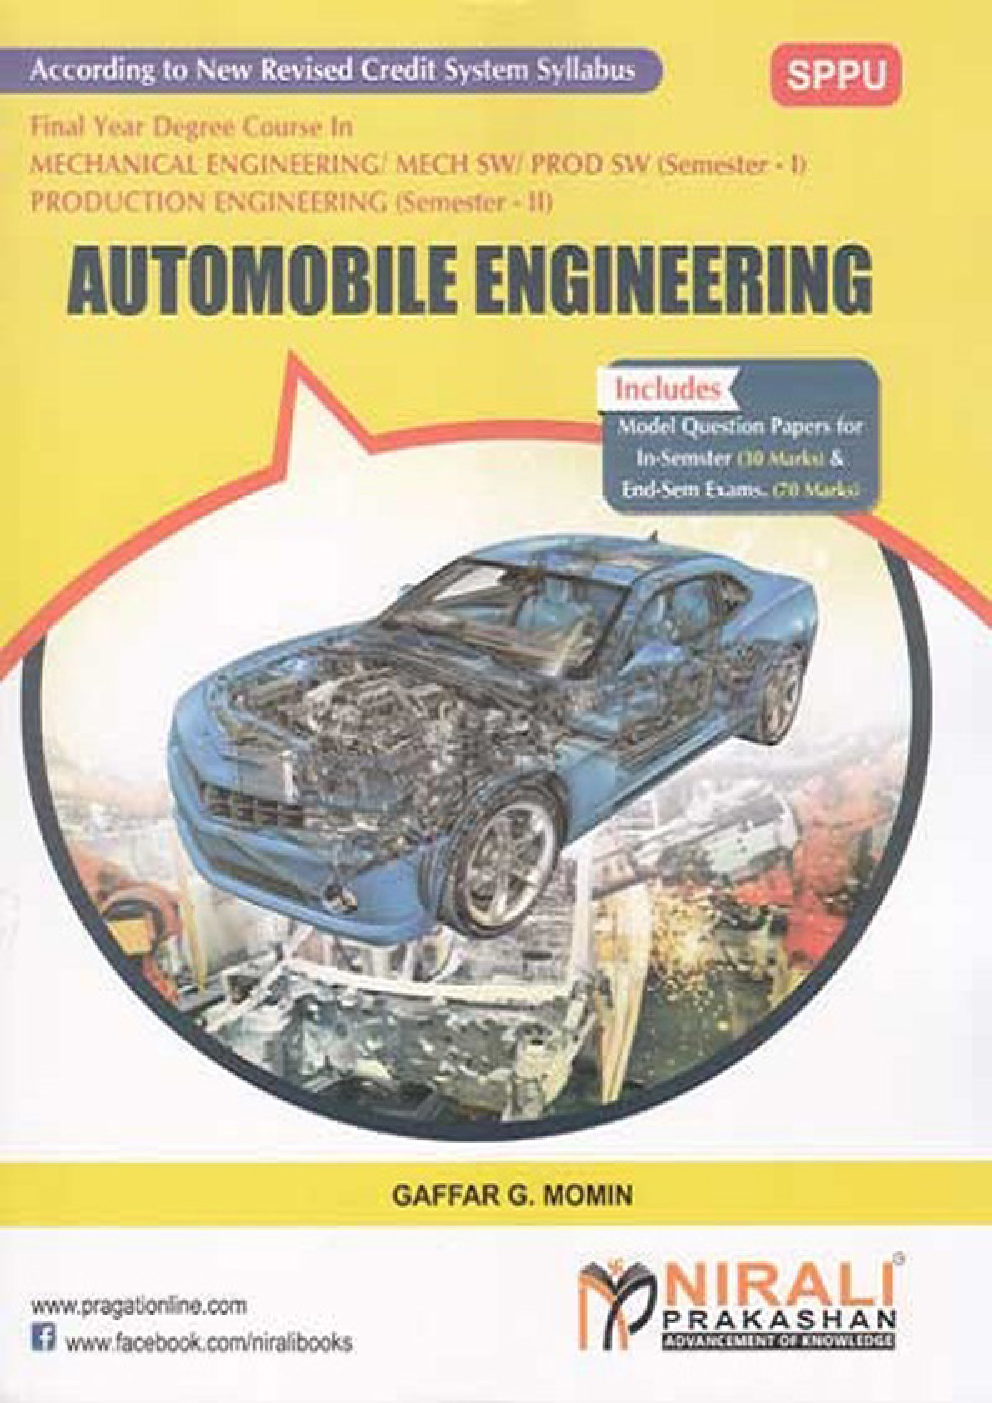 Automobile Engineering - Page 1